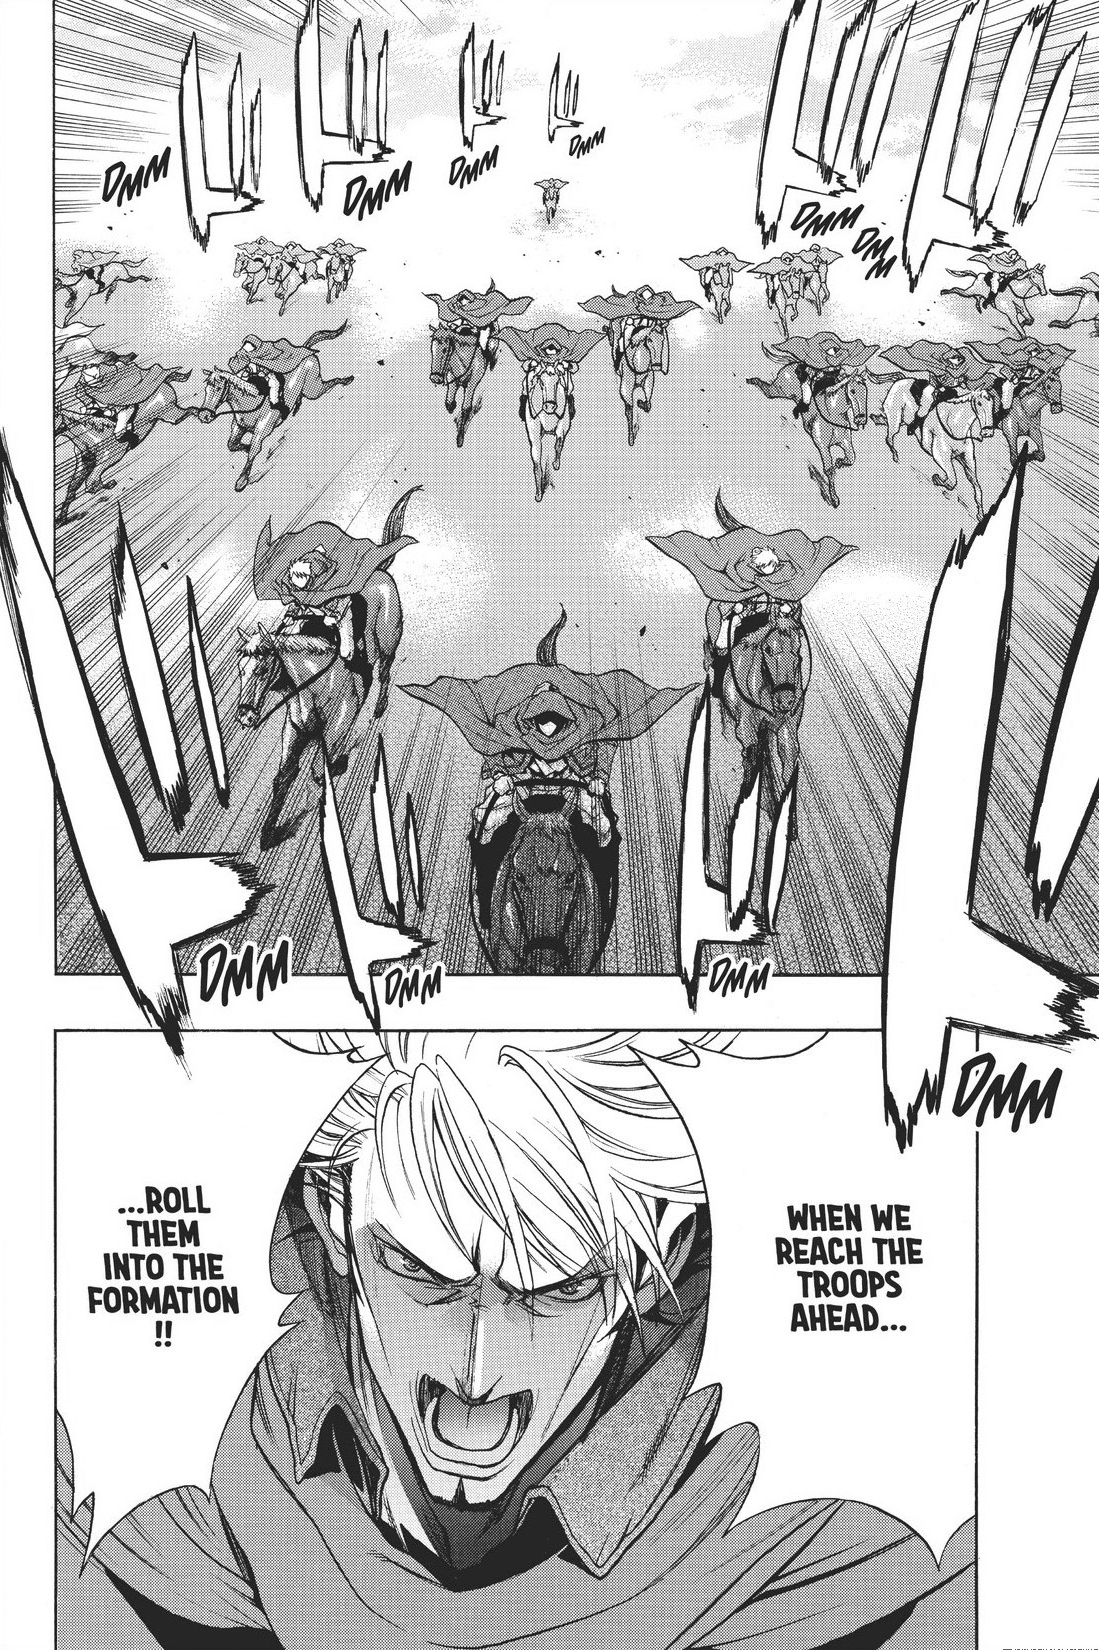 Read online Attack on Titan: Before the Fall comic -  Issue #2 - 179